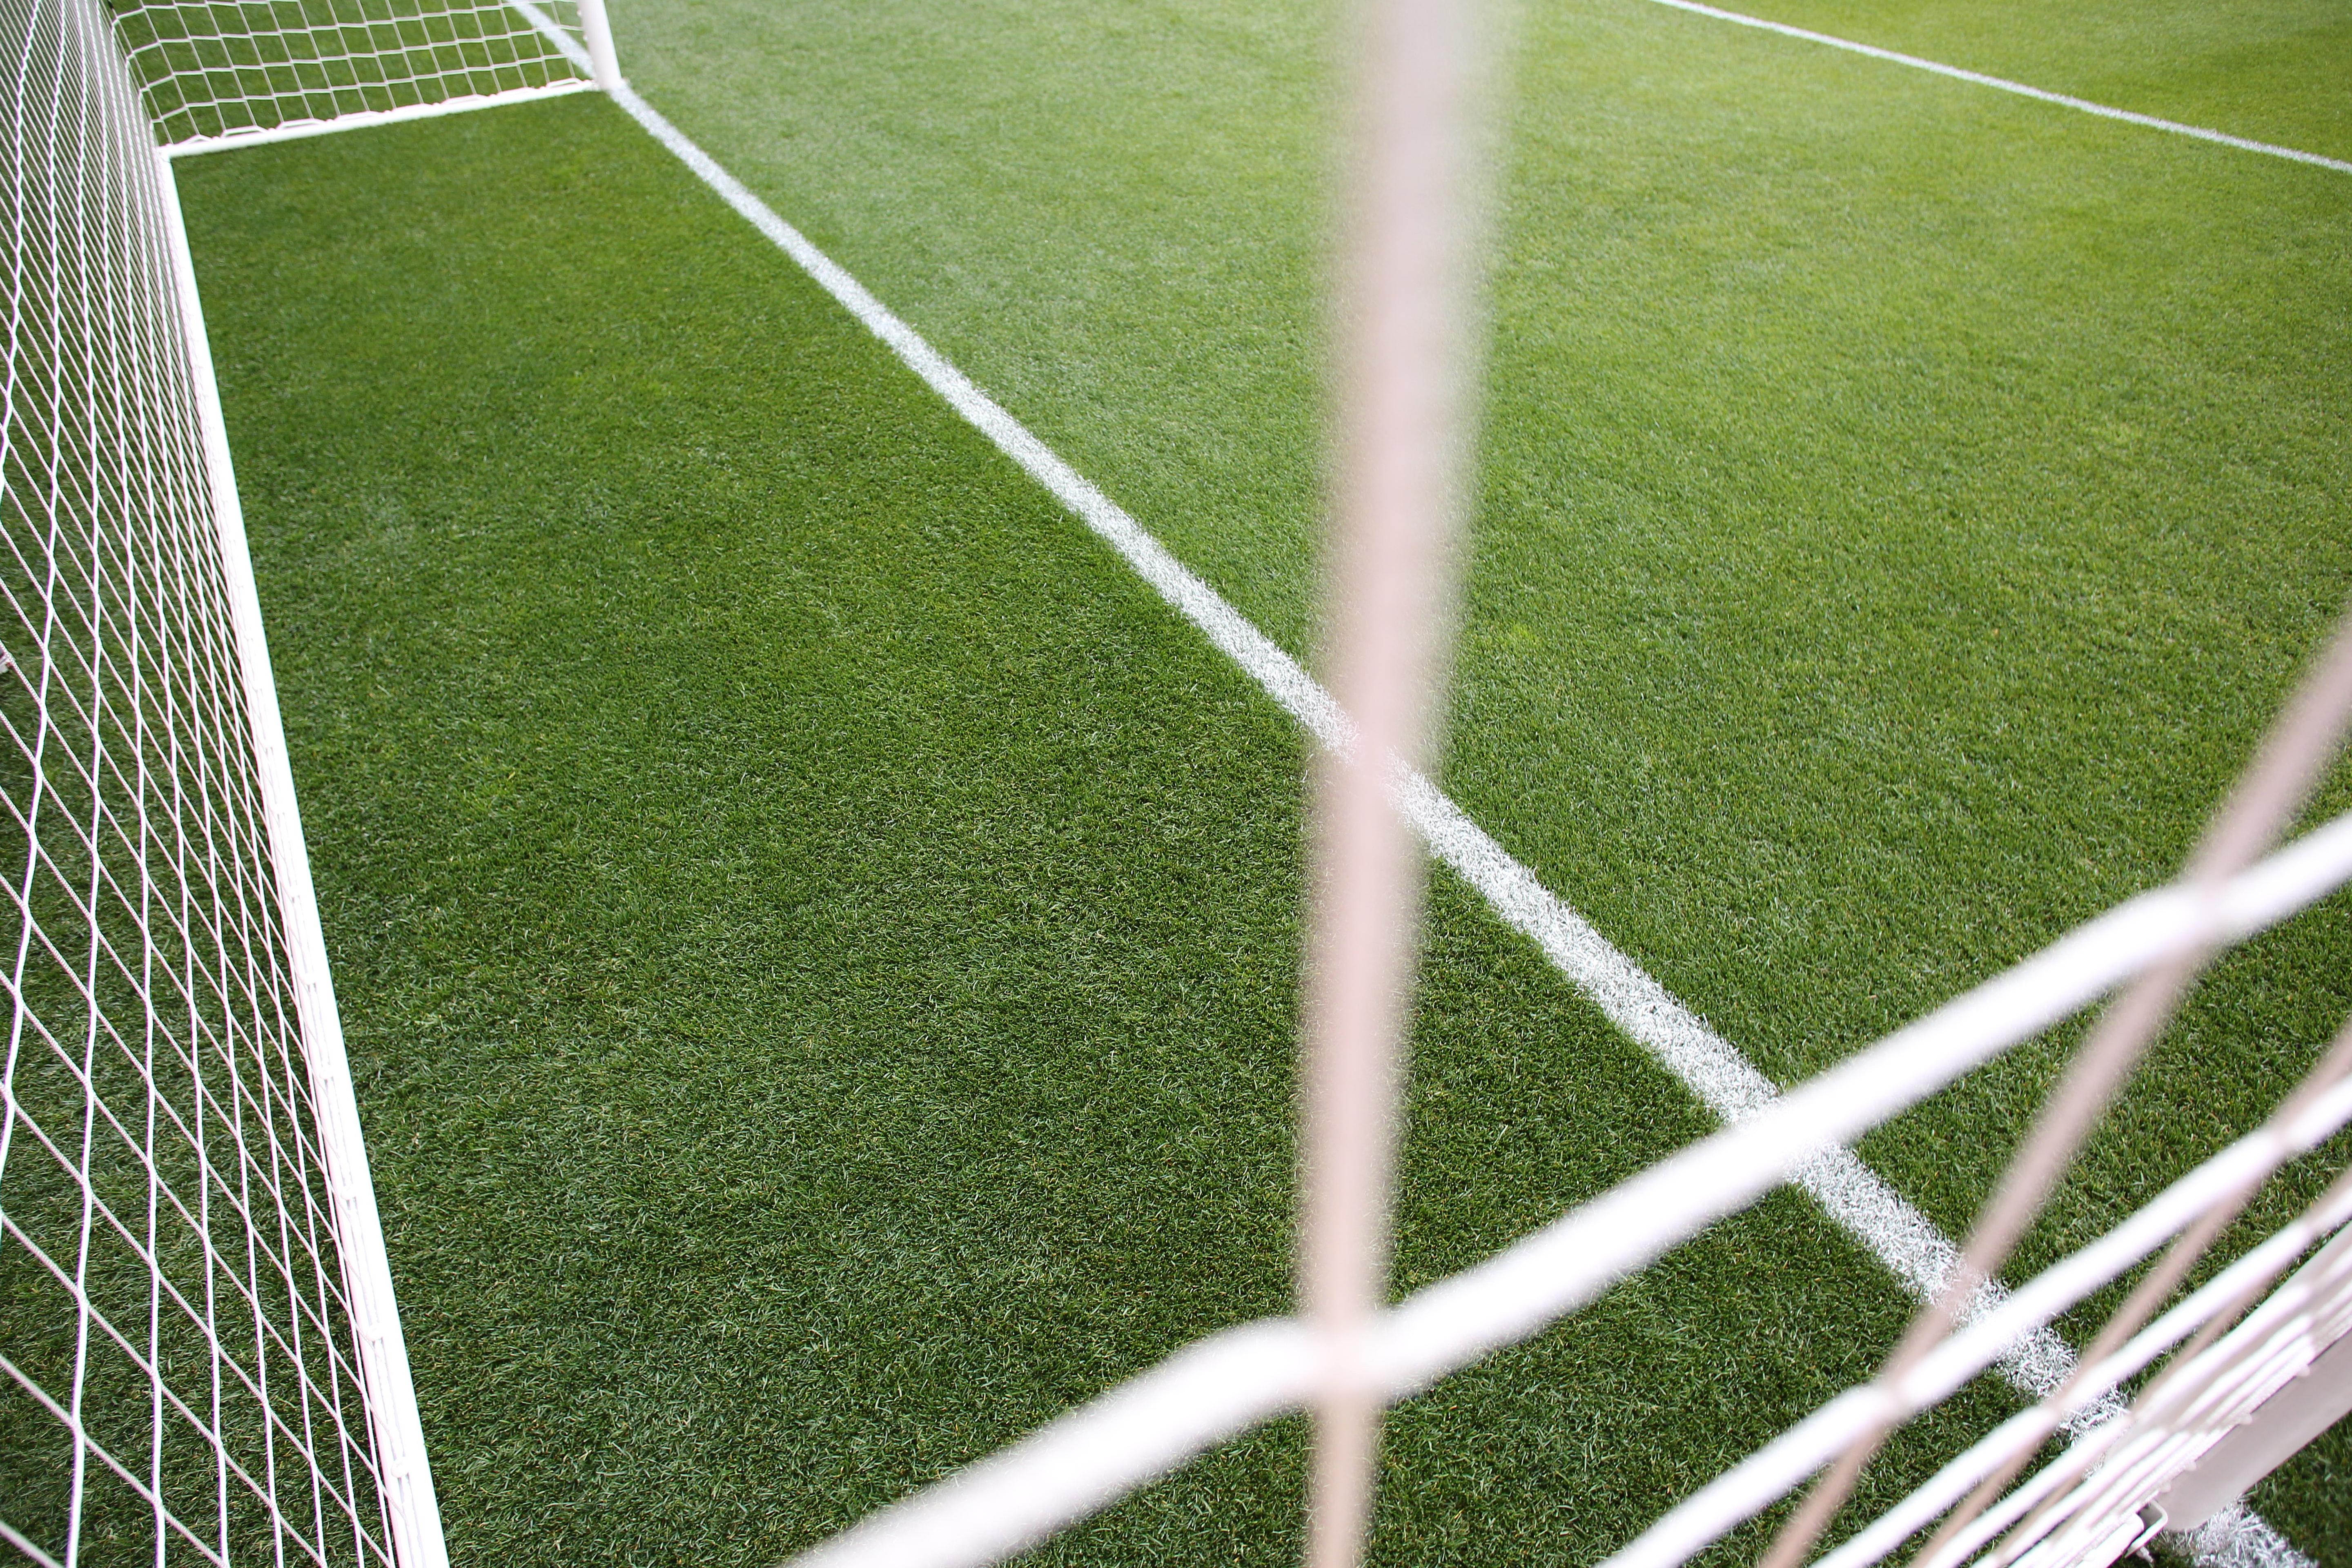 A generic image of a professional soccer goal